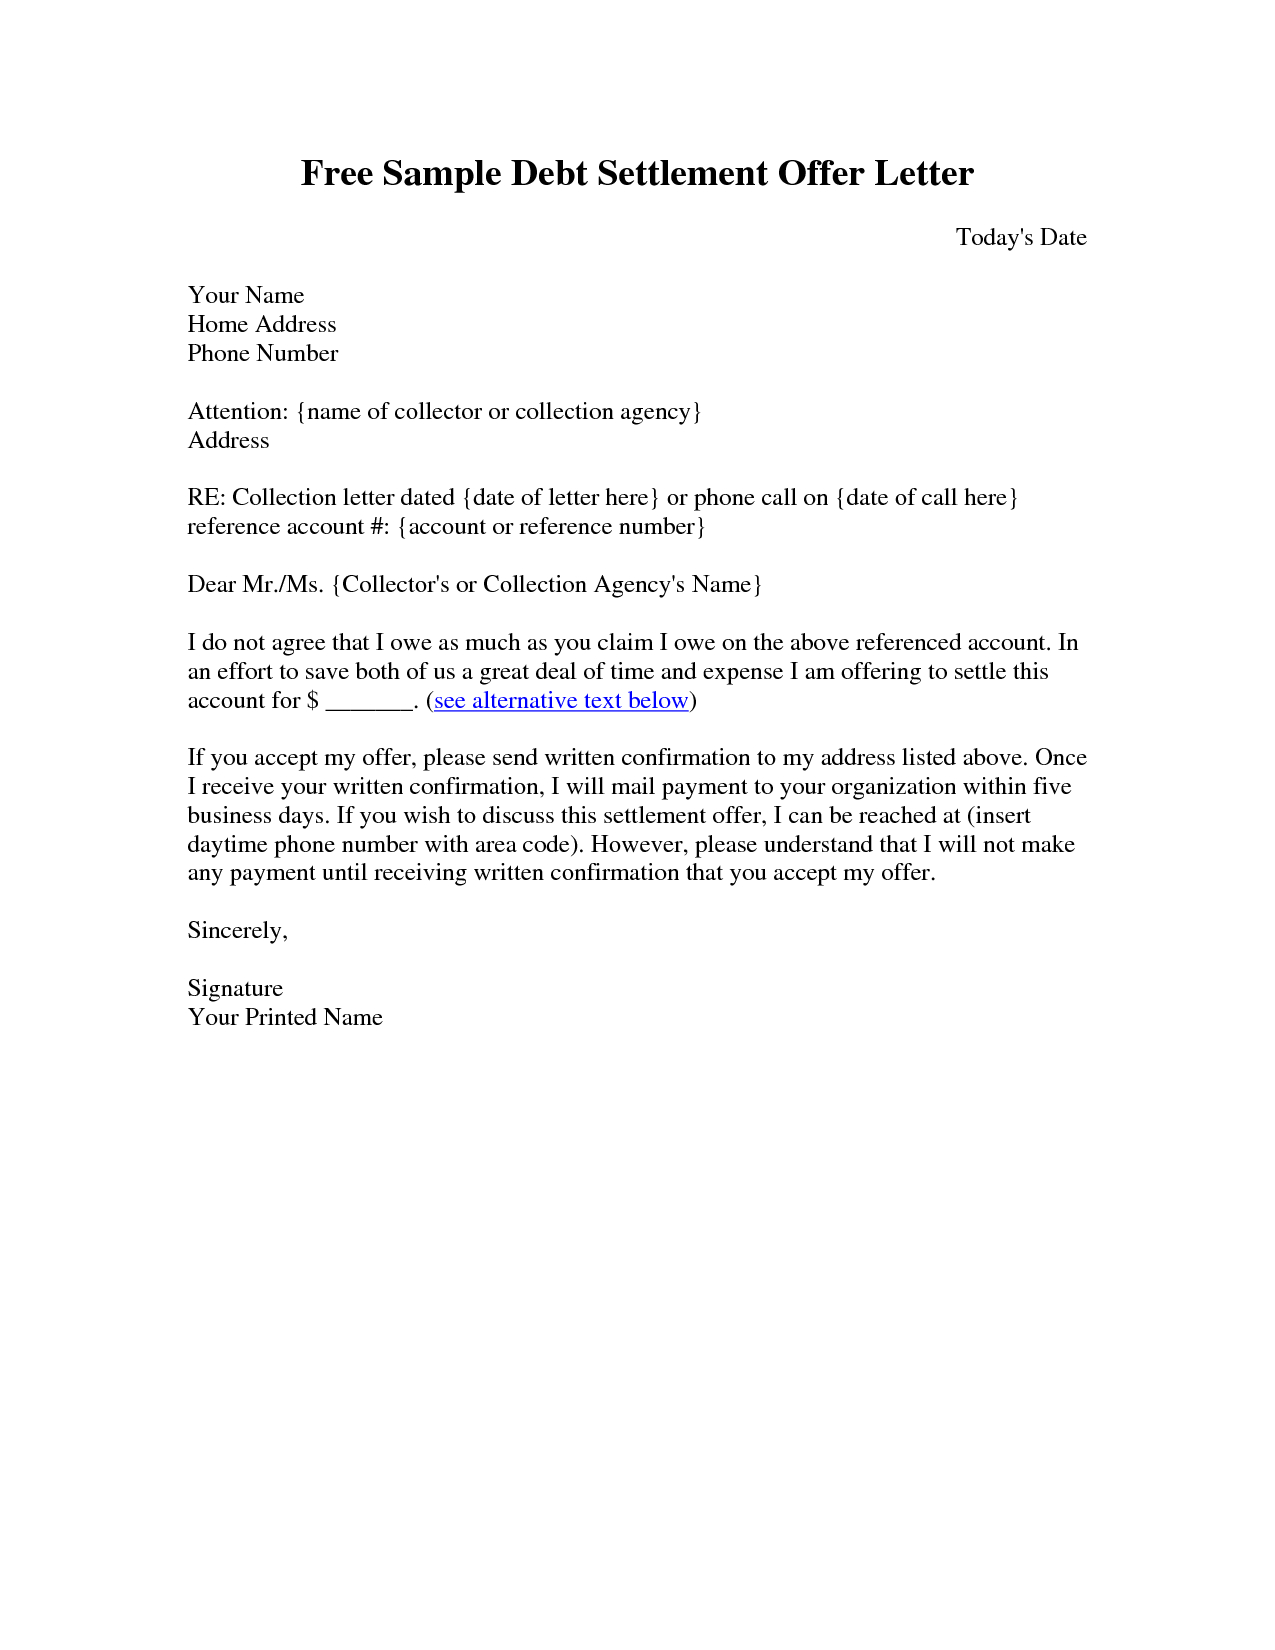 I Owe You Letter Template - Sample Settlement Letter Debt Settlement Letter Sample